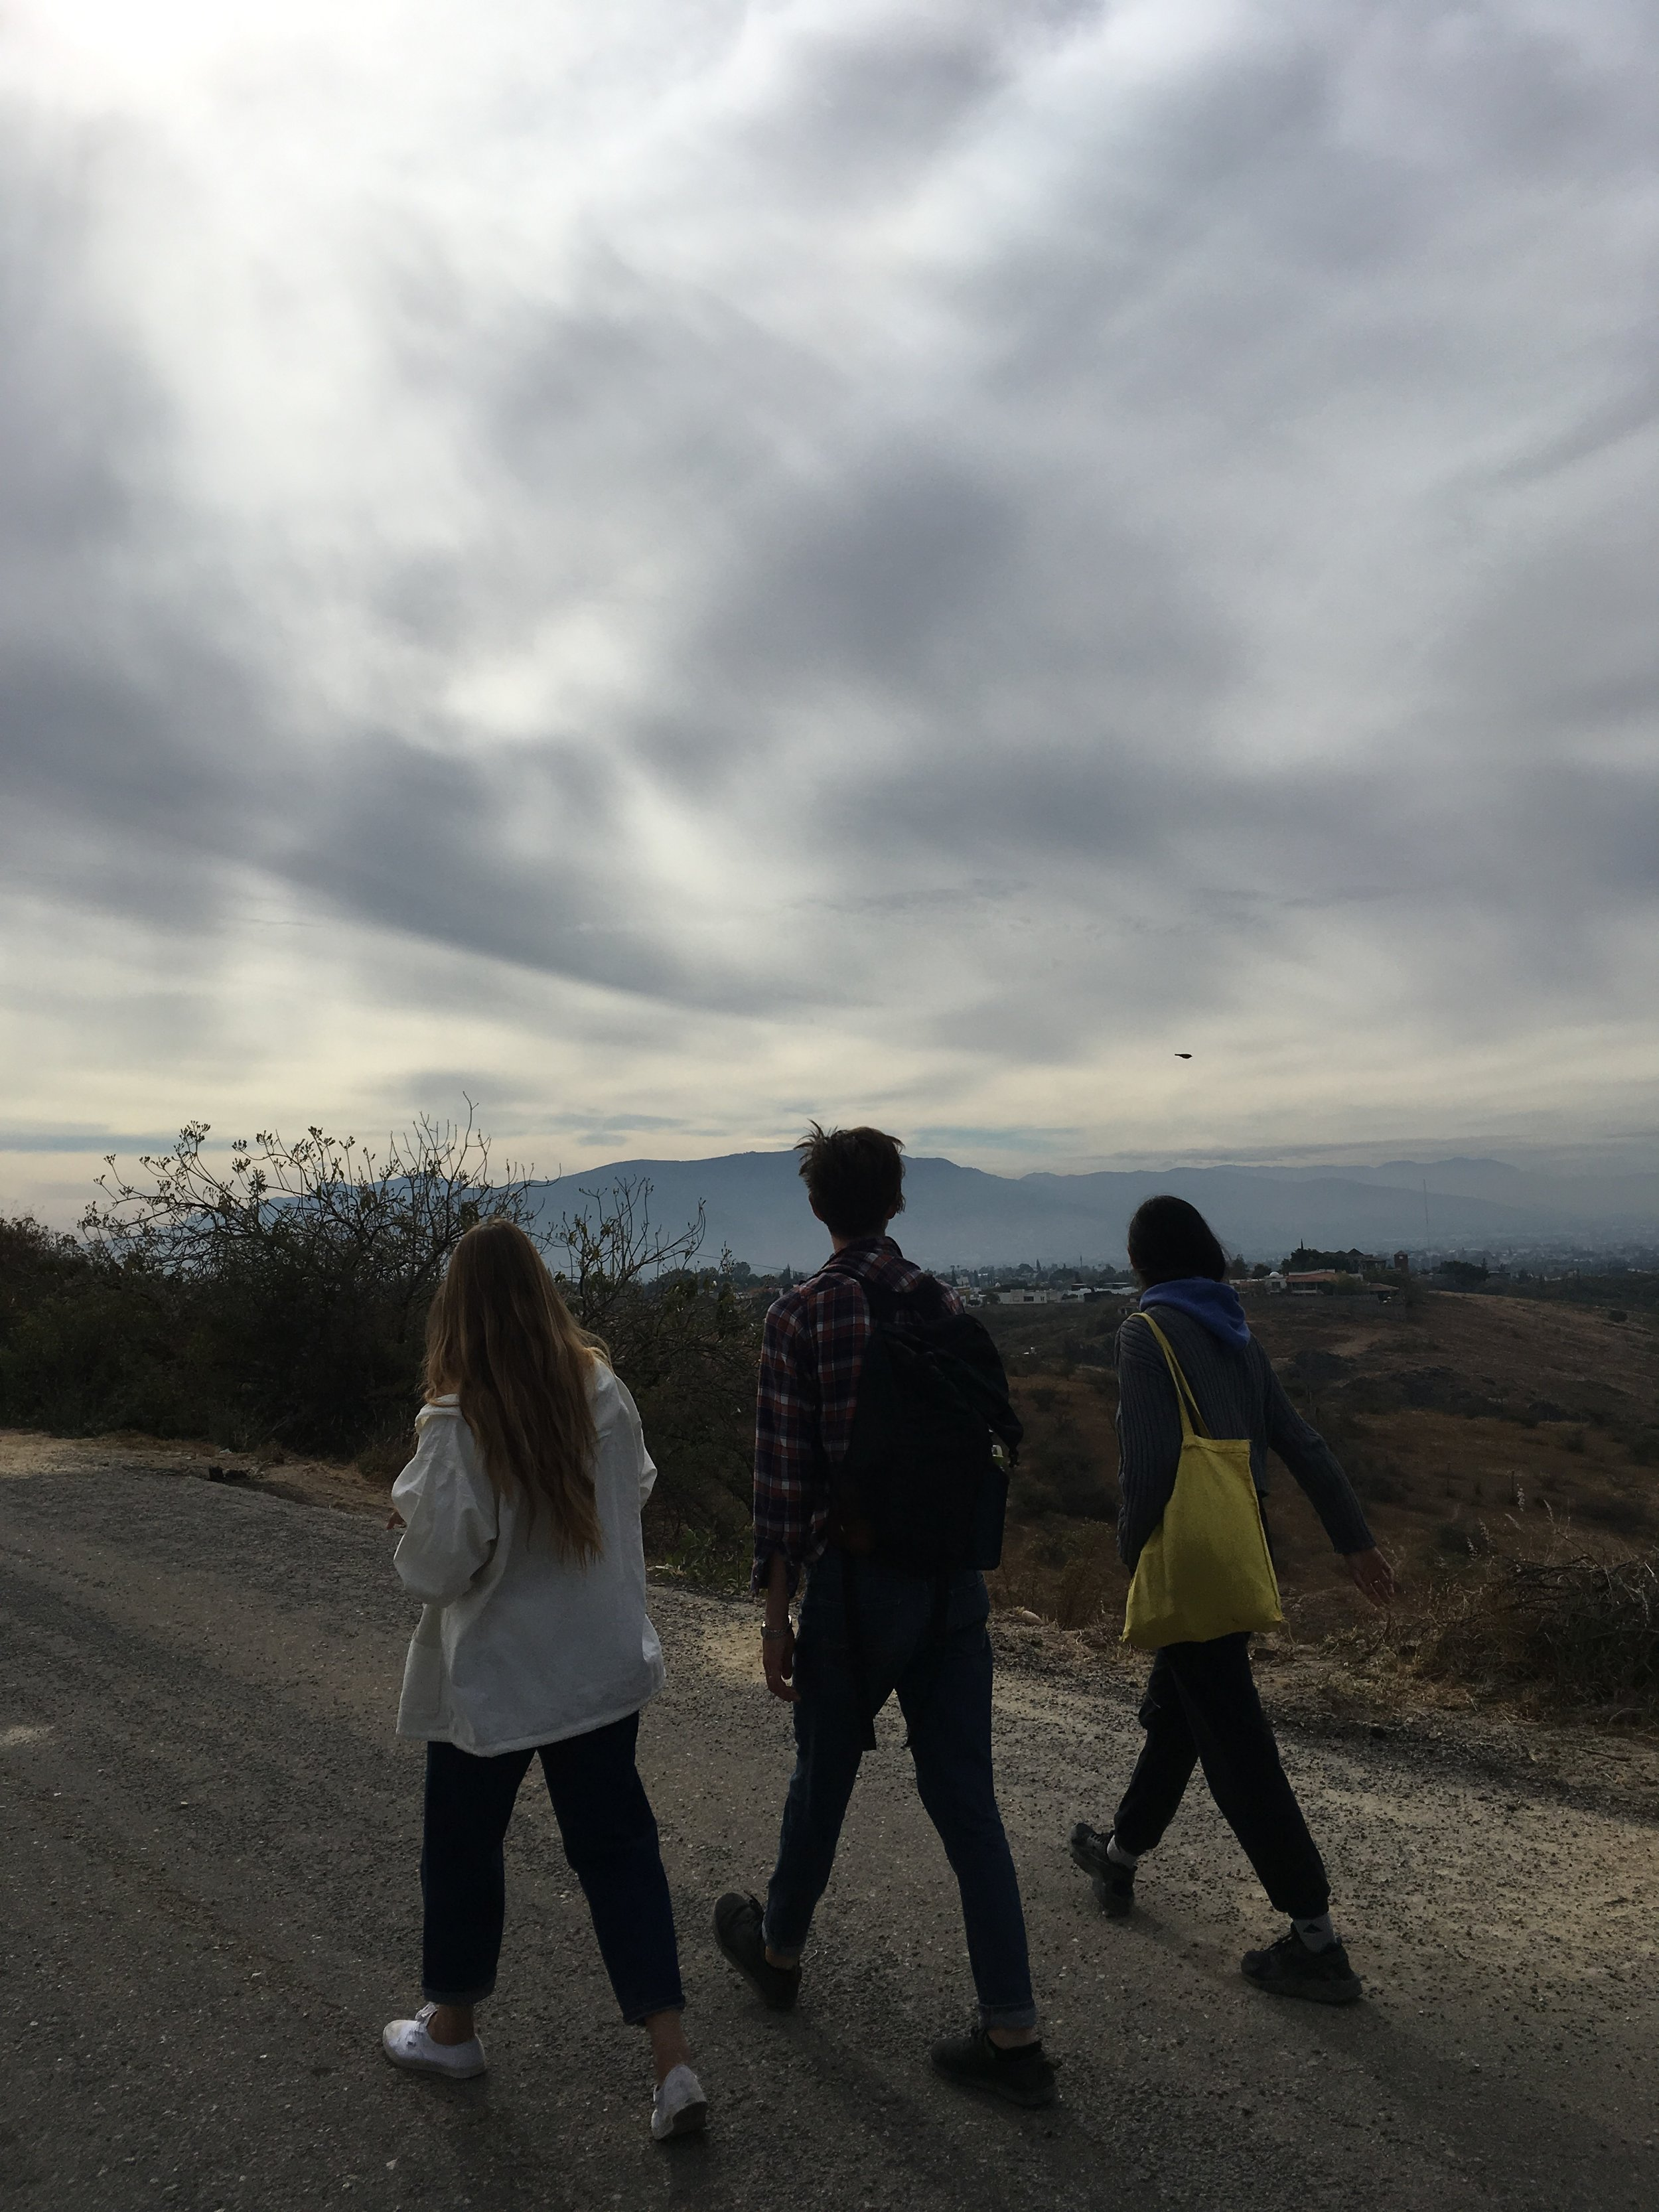 One last walk in the mountains with Jessica Chrastil and Amanny Ahmad